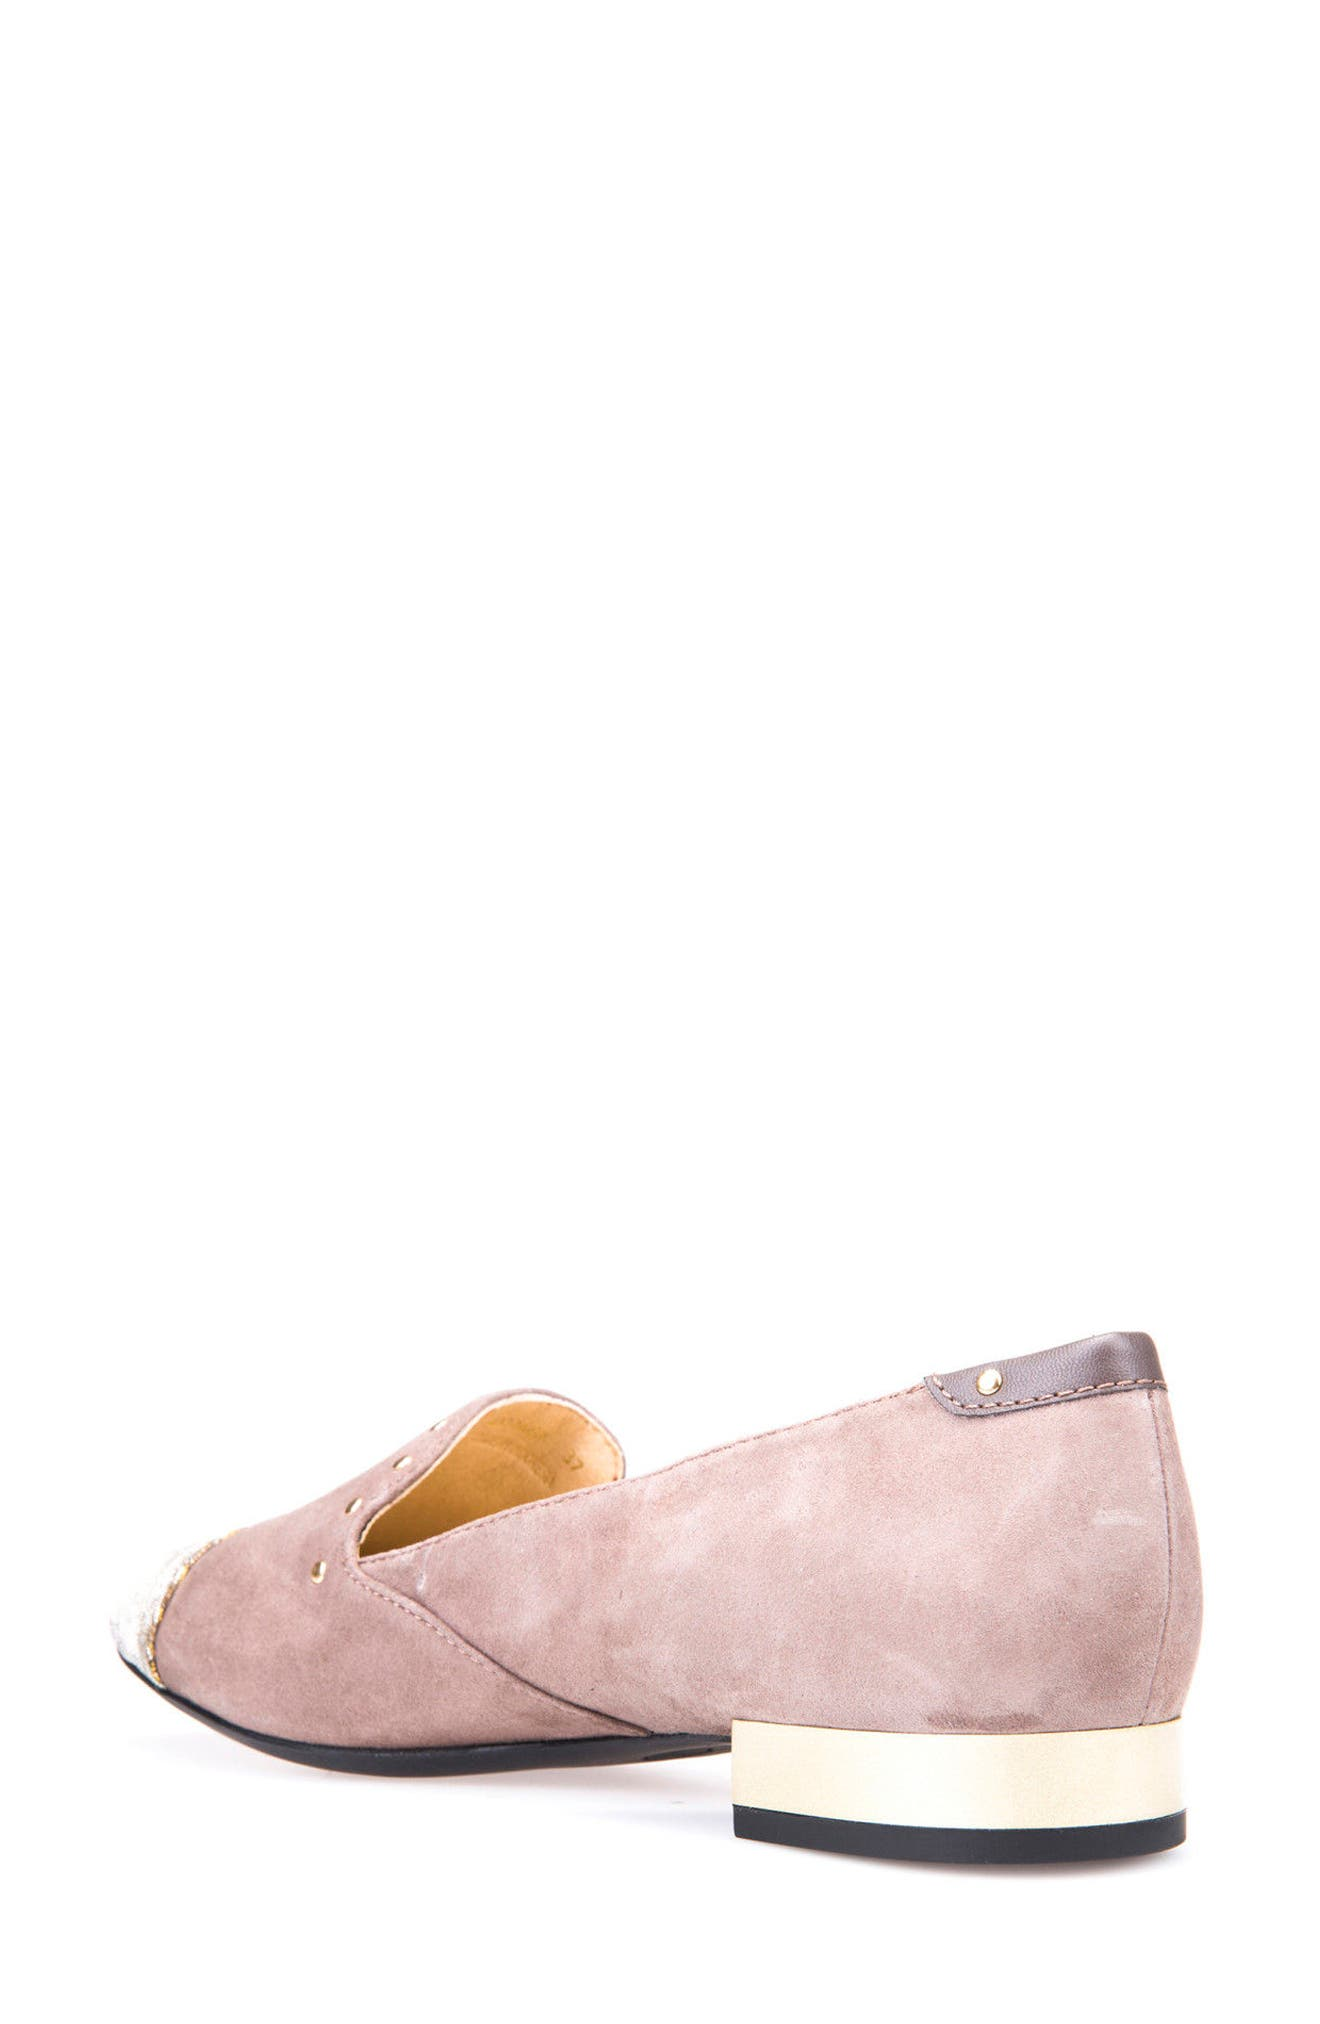 Wistrey Cap Toe Loafer,                             Alternate thumbnail 6, color,